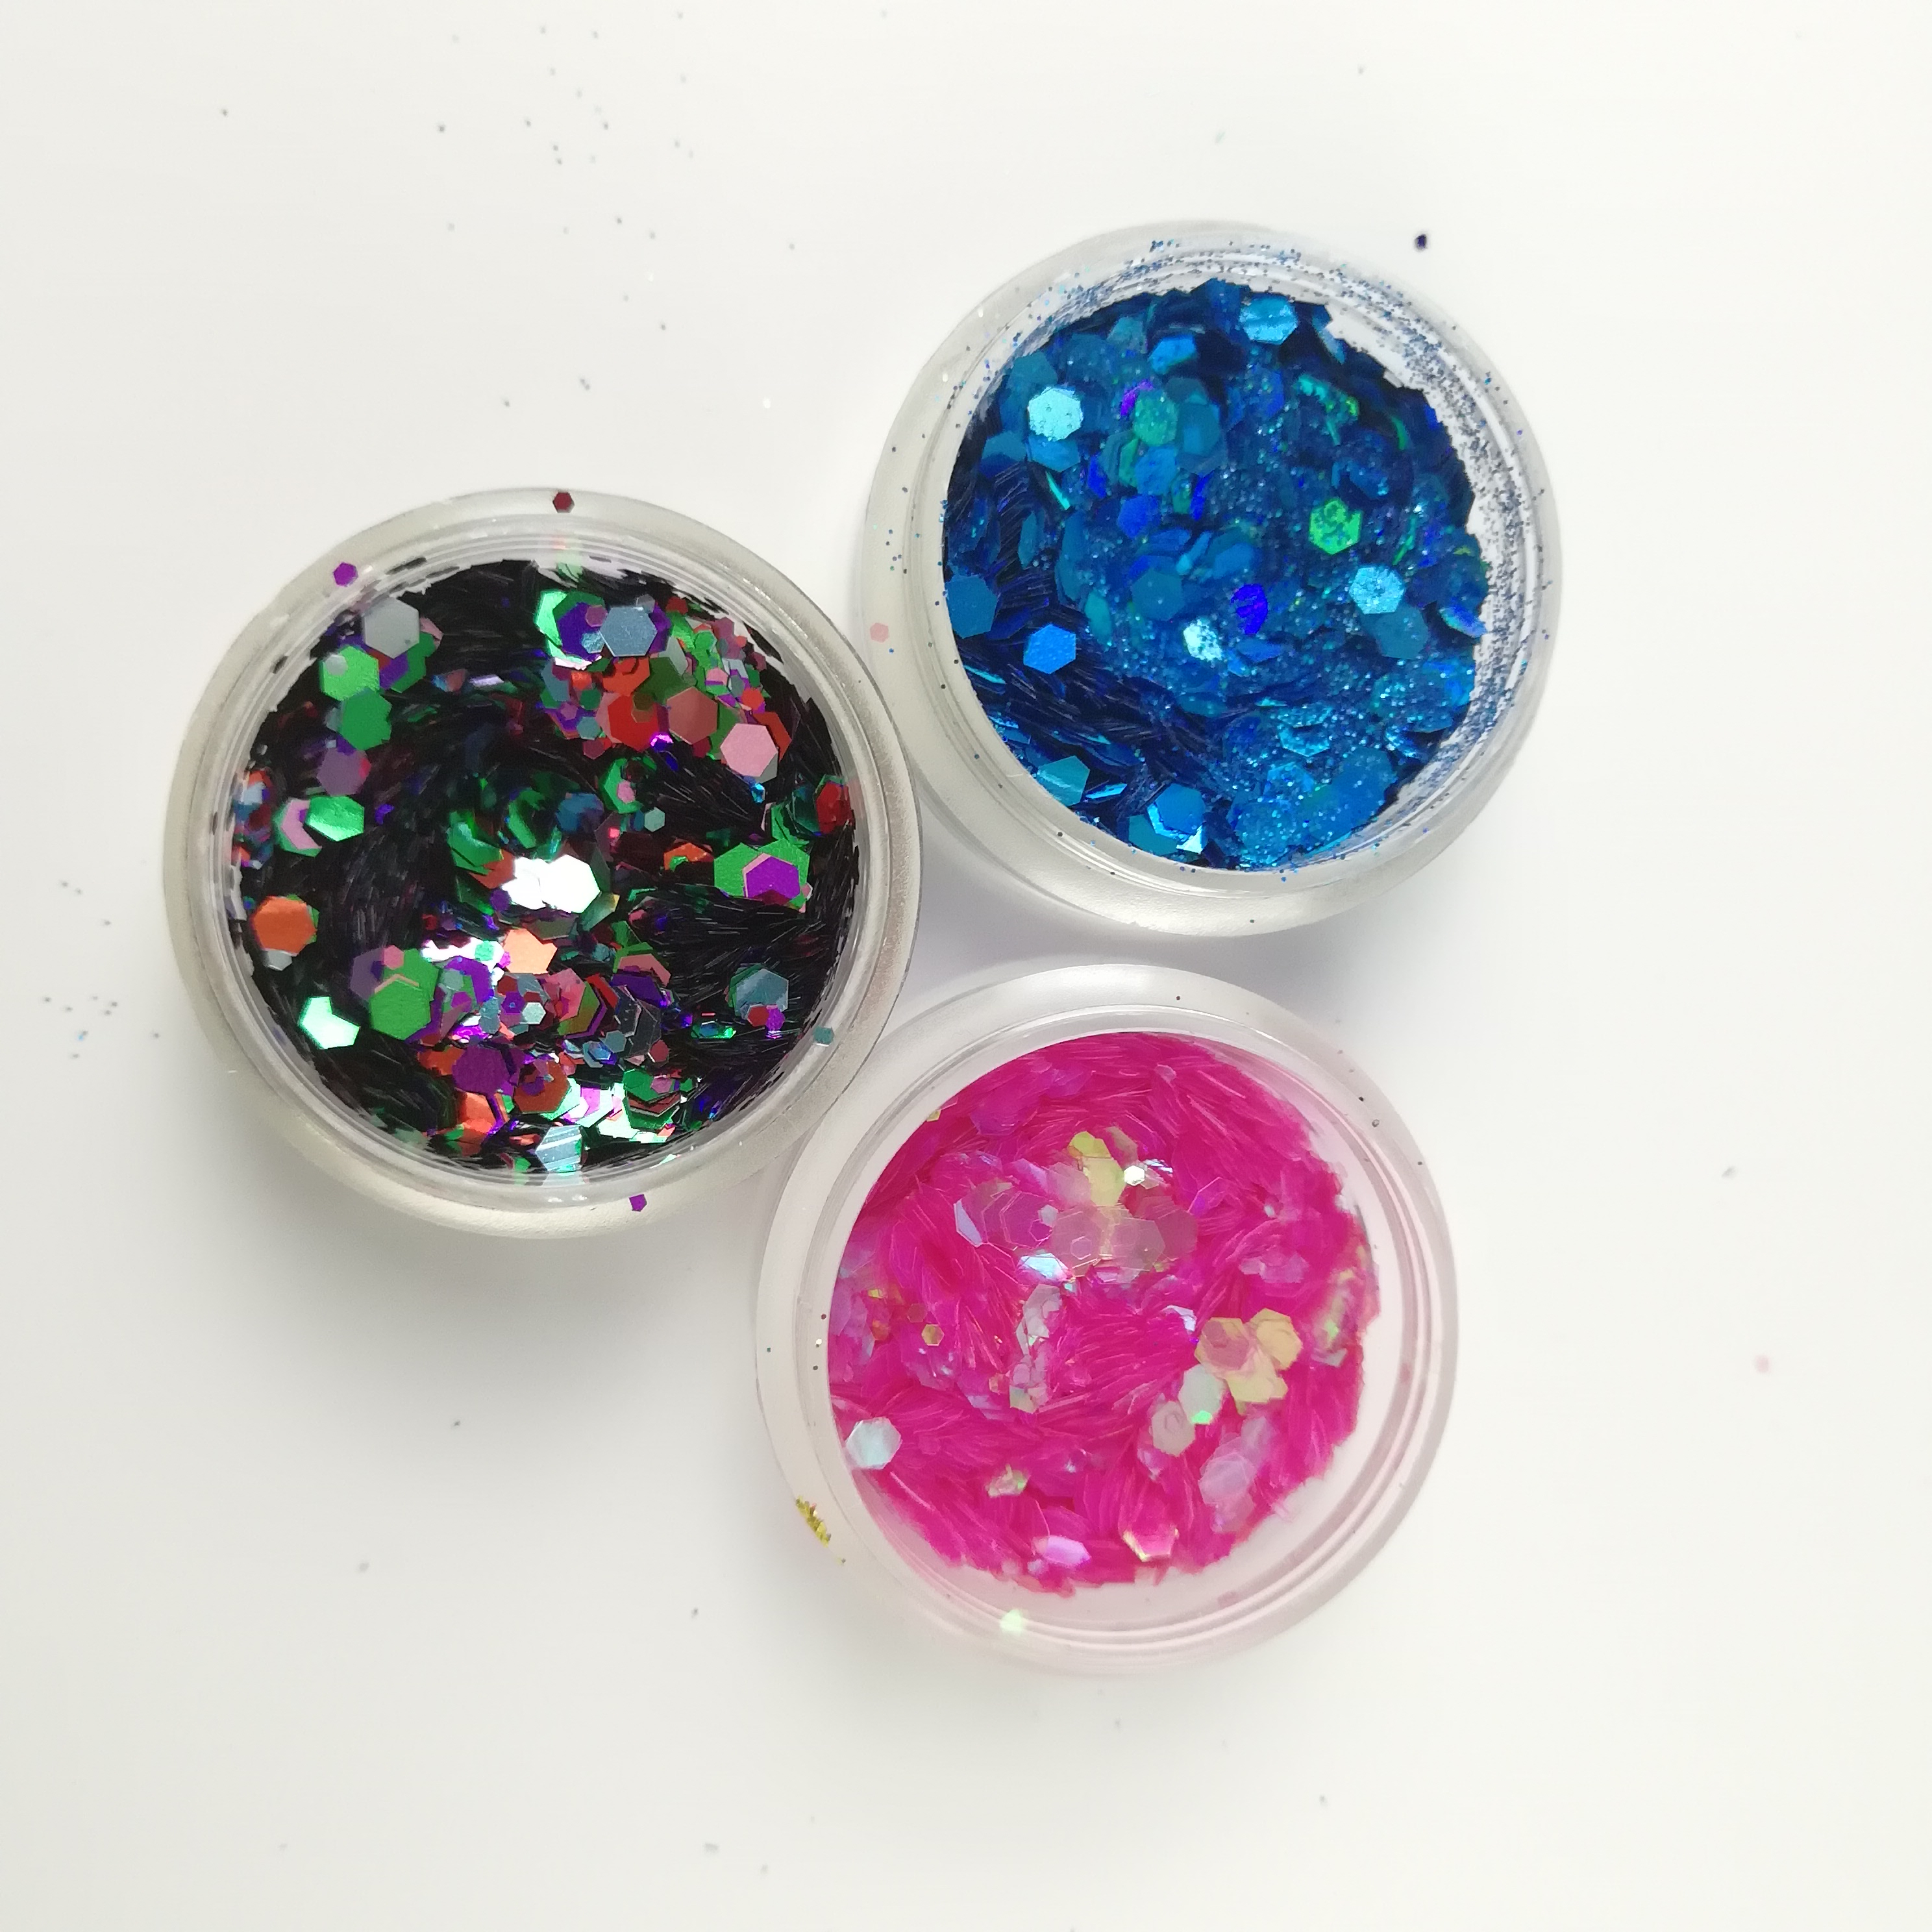 Wholesale glitter shimmer powder for cosmetics face paint makeup grade metallic glitters